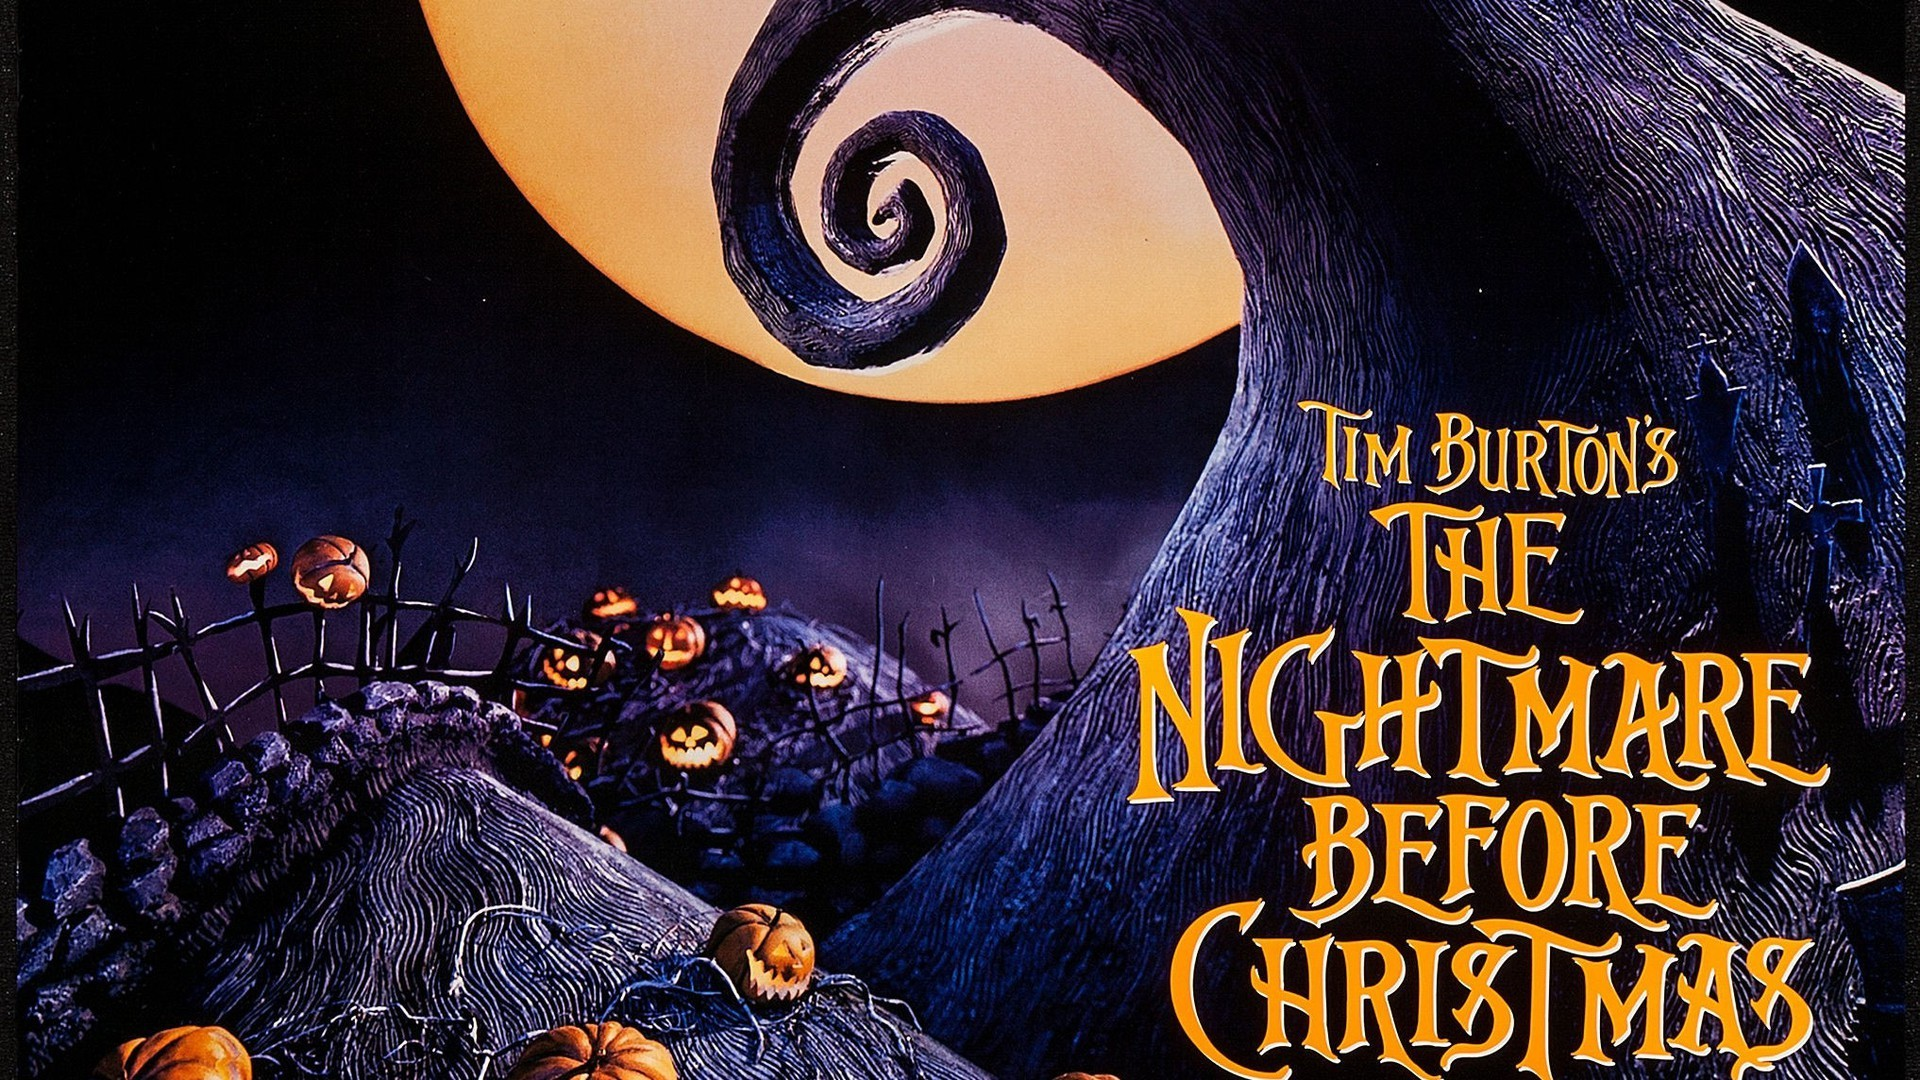 1920x1080 The nightmare before christmas movie posters wallpapers.